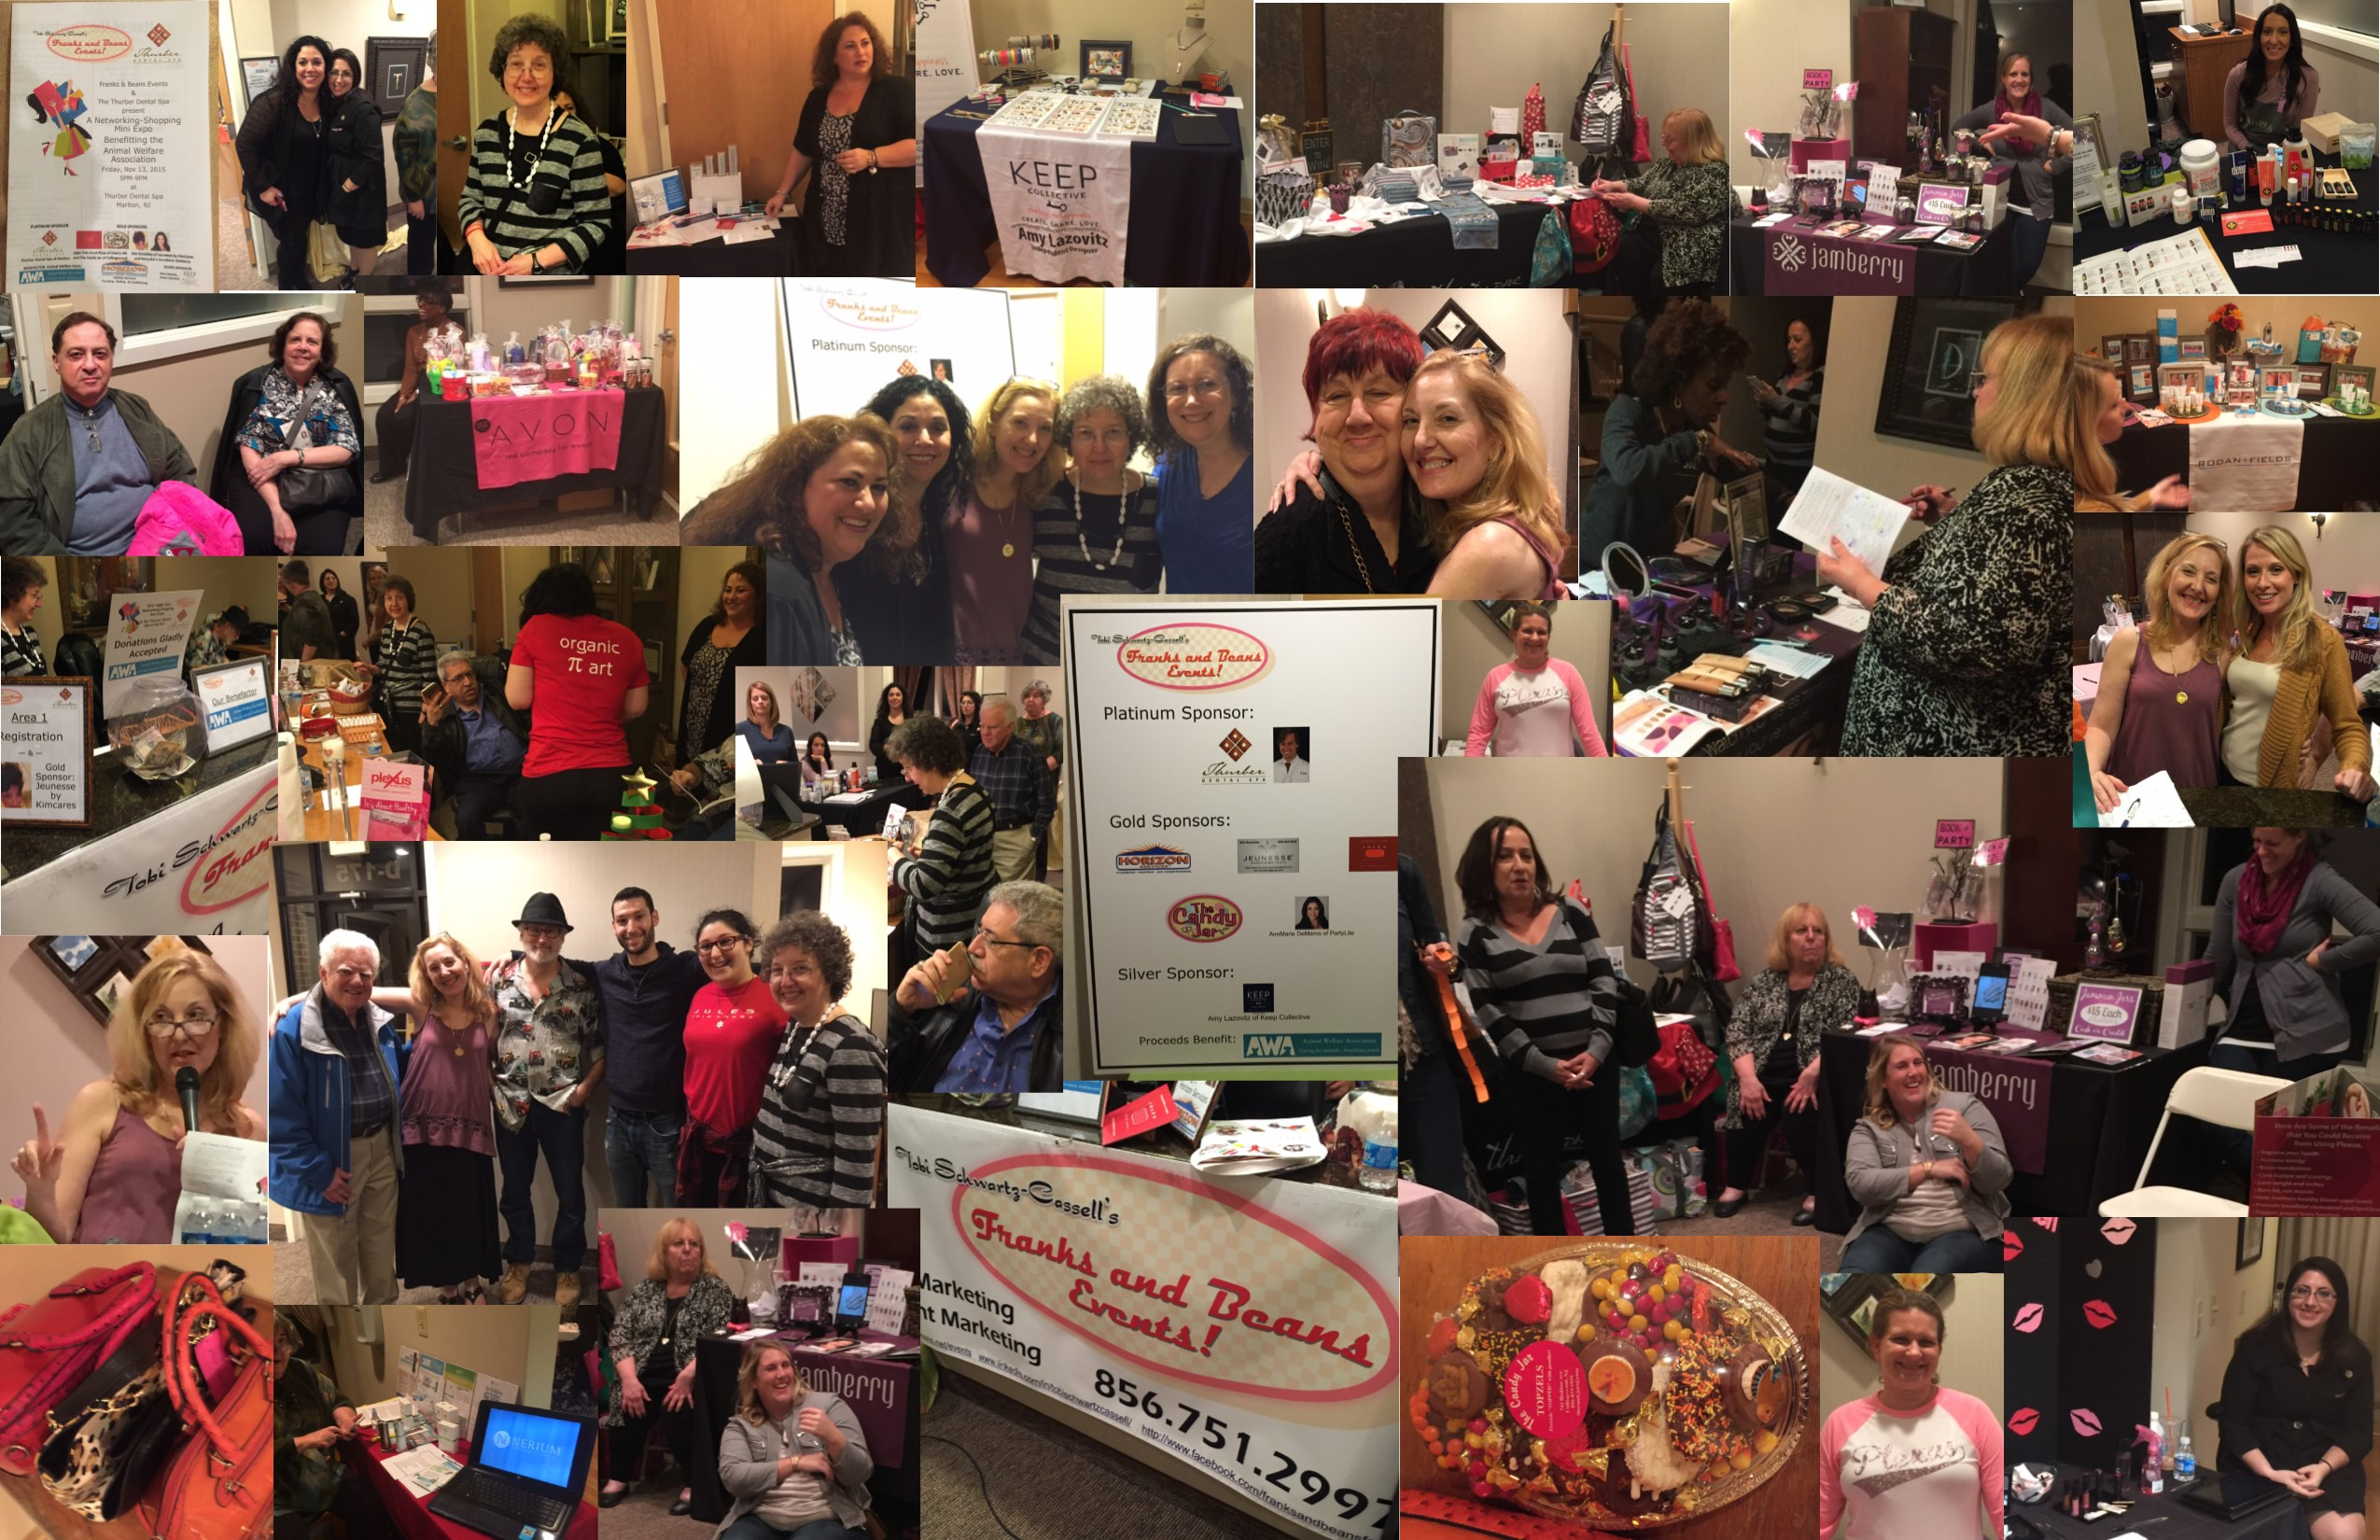 What a great night! Fun, food, shopping and helping the AWA. We thank Dr. John Thurber, DMD, for his hospitality and for offering specials on Botox, Invisalign and Boost Whitening!